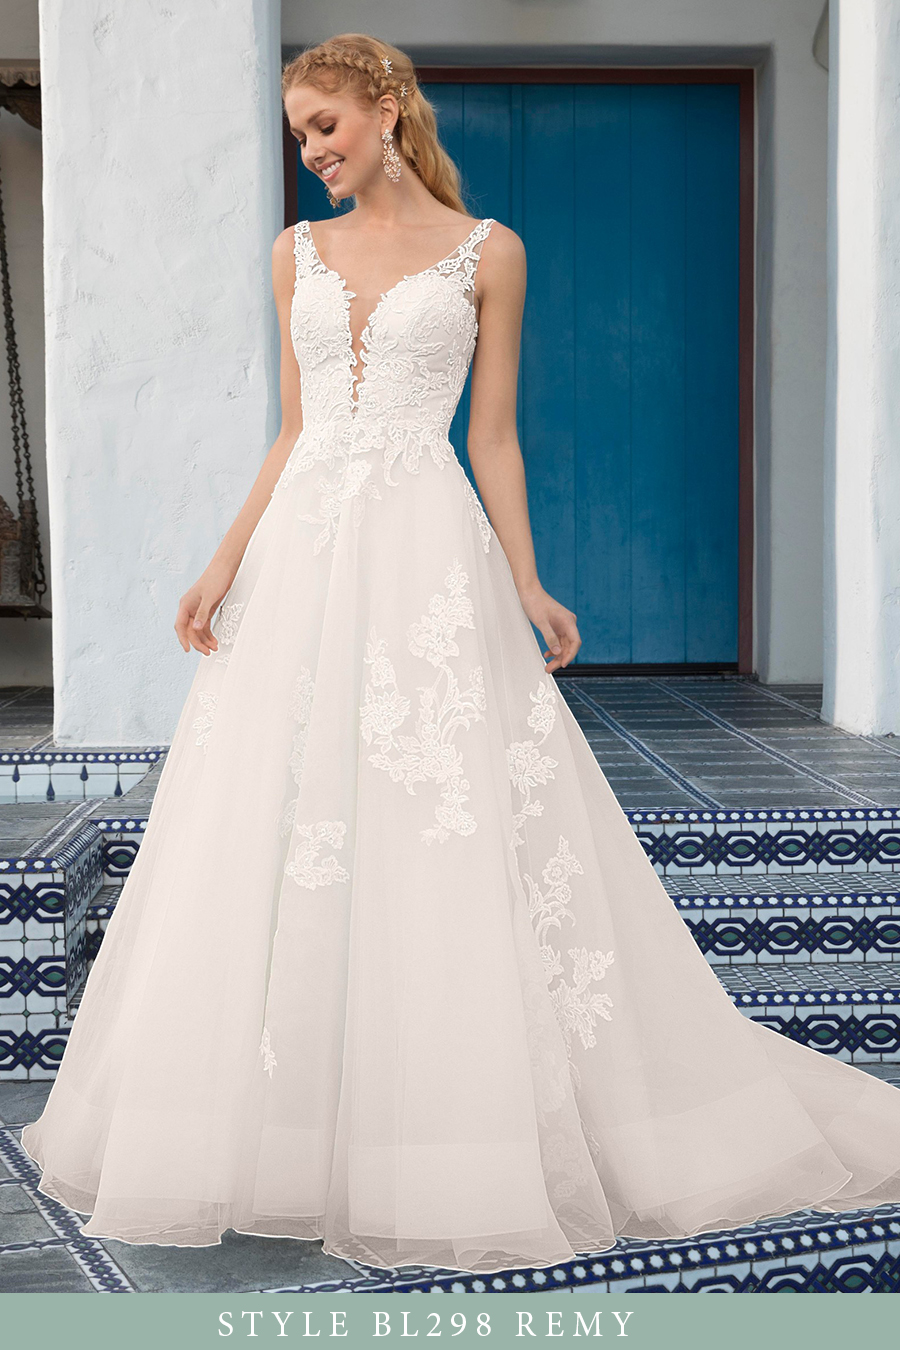 NEW Beloved by Casablanca Bridal Fall 2019 Collection: Adored In Morocco | Affordable Bohemian Classic Wedding Dresses